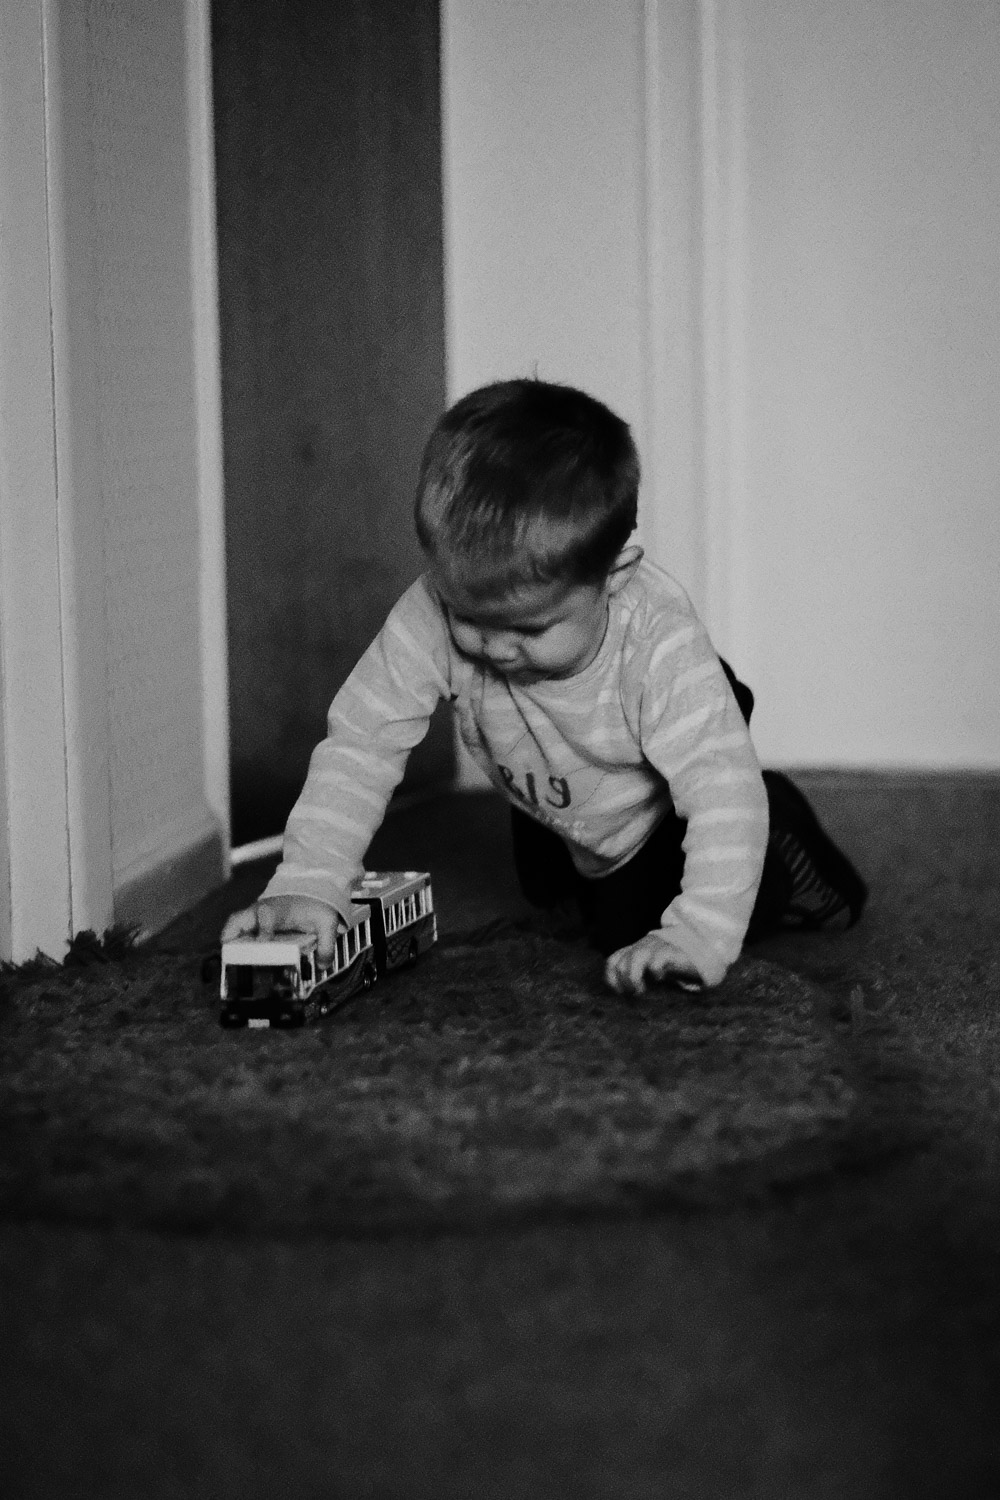 Ethan pushing toy bus